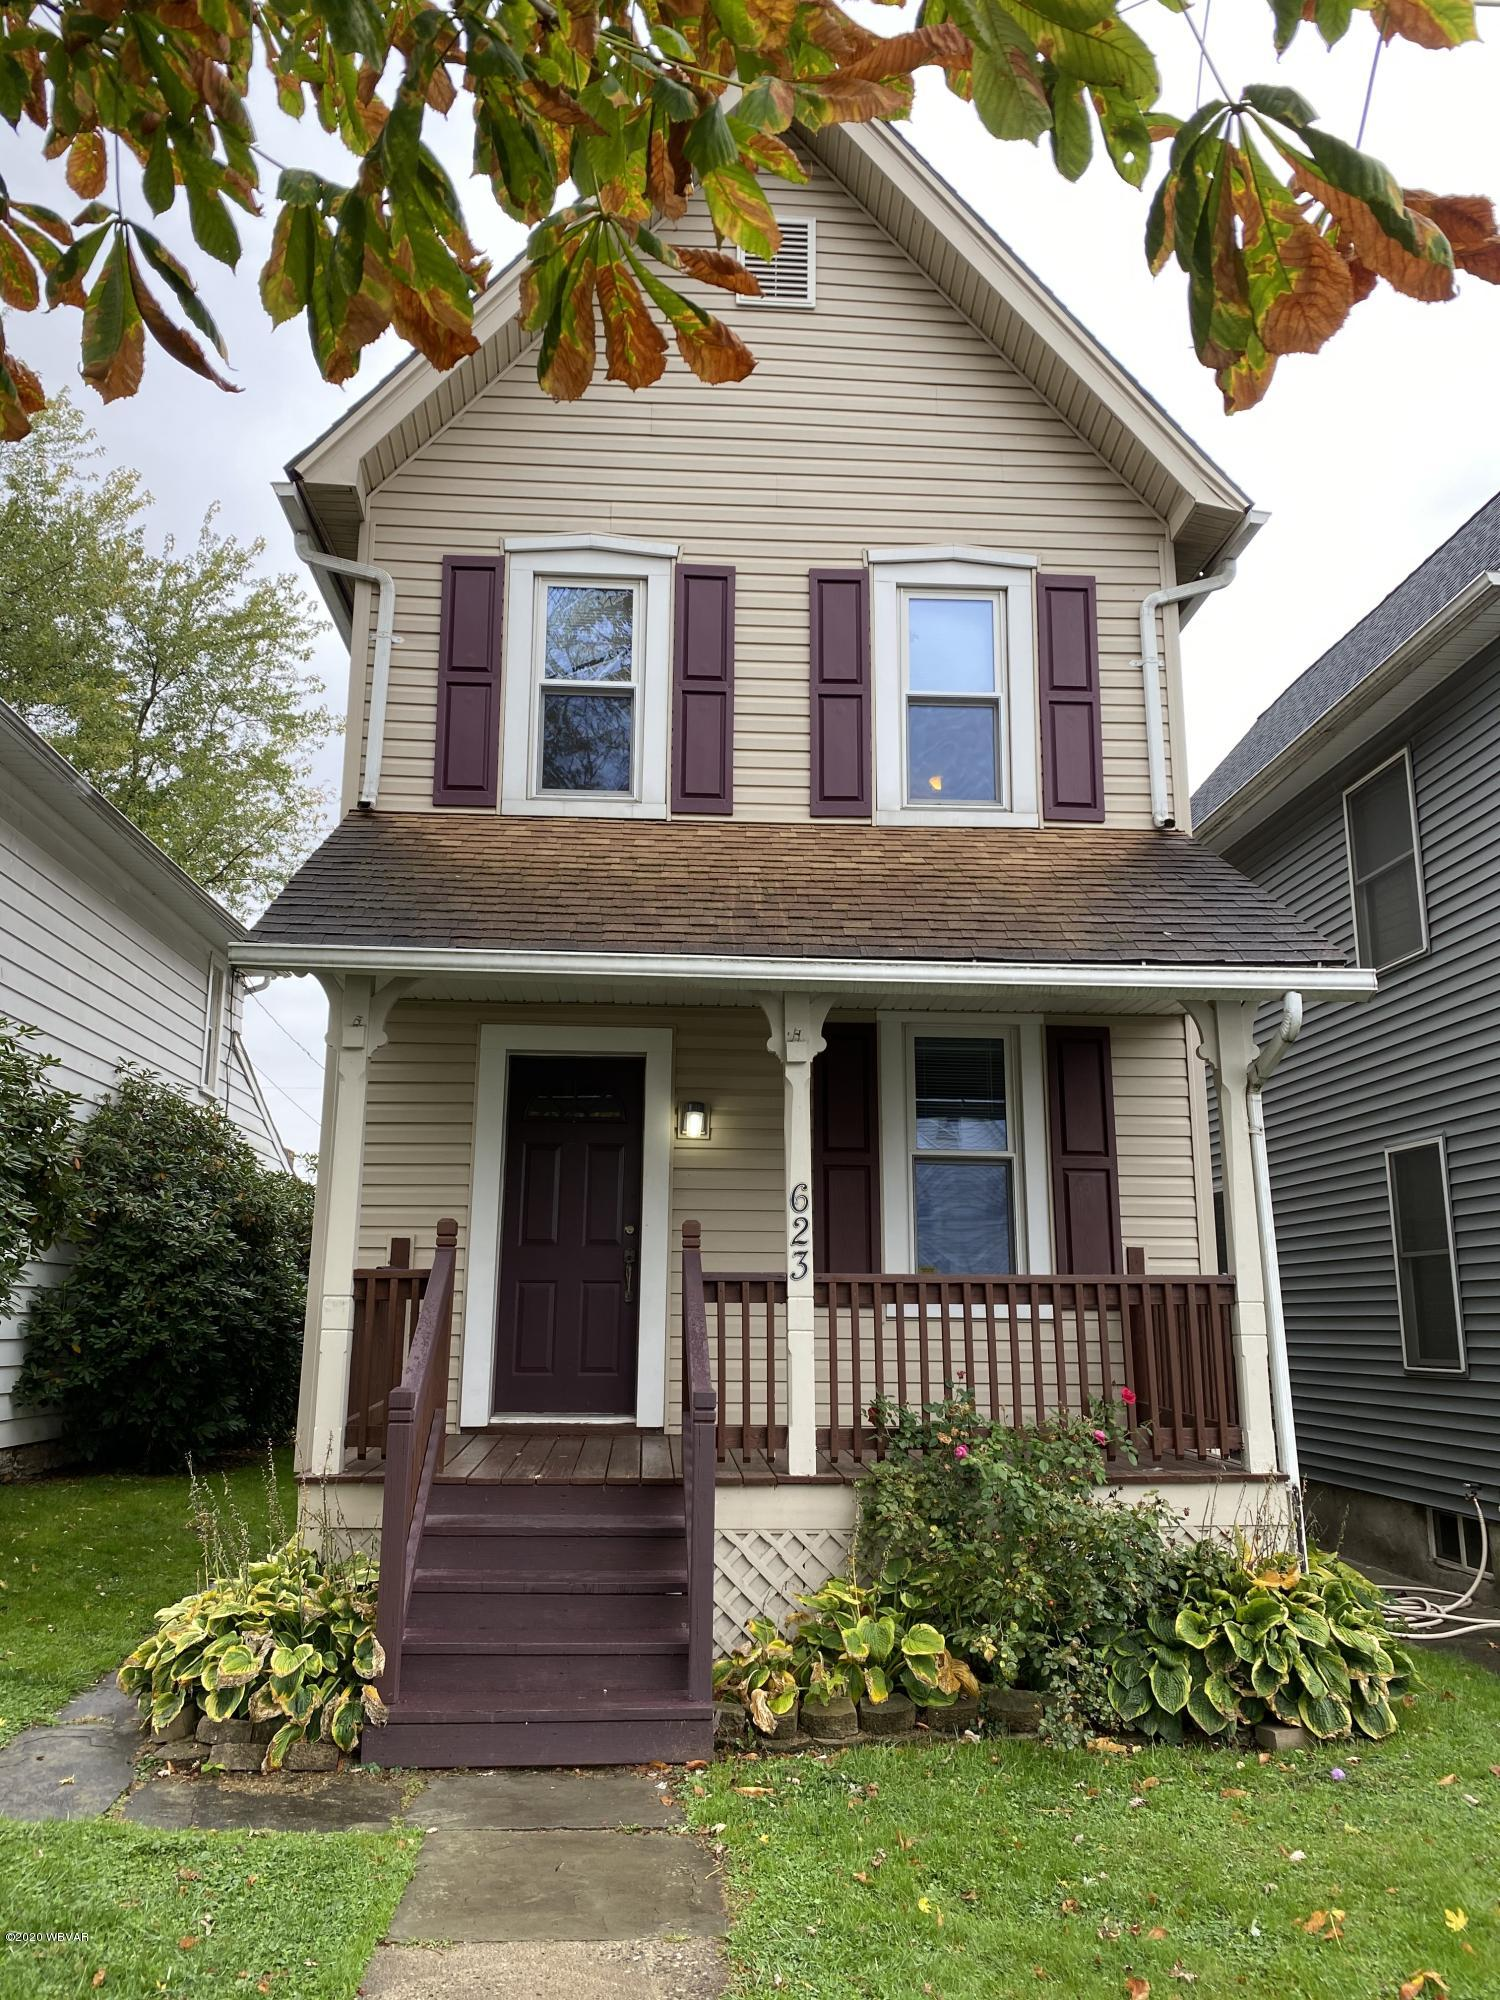 623 6TH AVENUE, Williamsport, PA 17701, 3 Bedrooms Bedrooms, ,2 BathroomsBathrooms,Residential,For sale,6TH,WB-91354